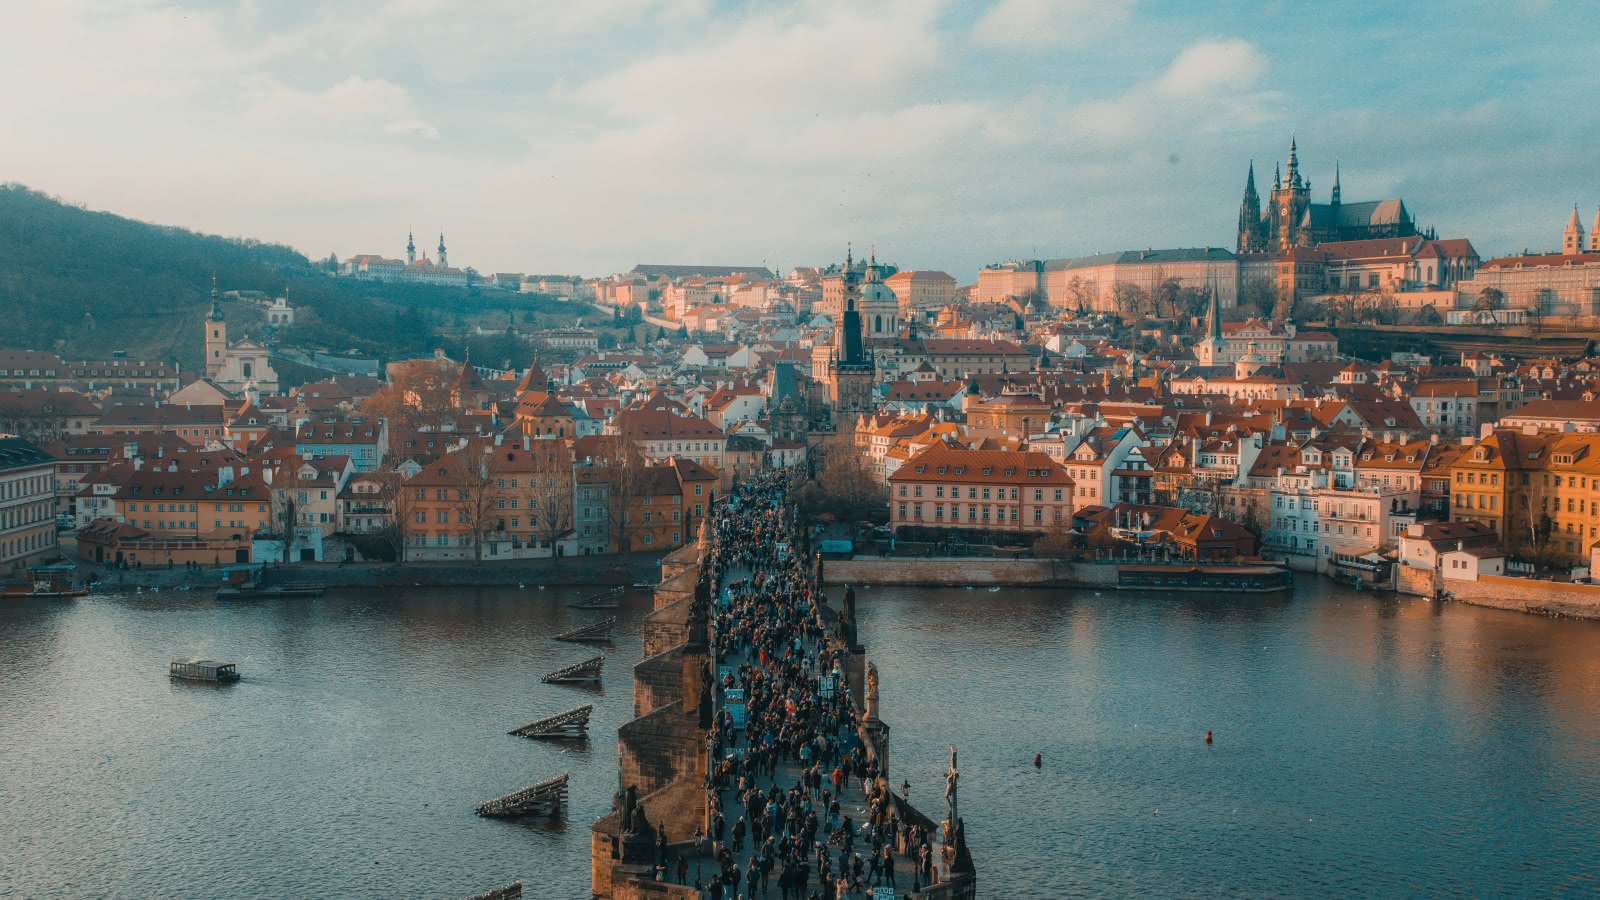 Aerial views of Charles Bridge in Prague